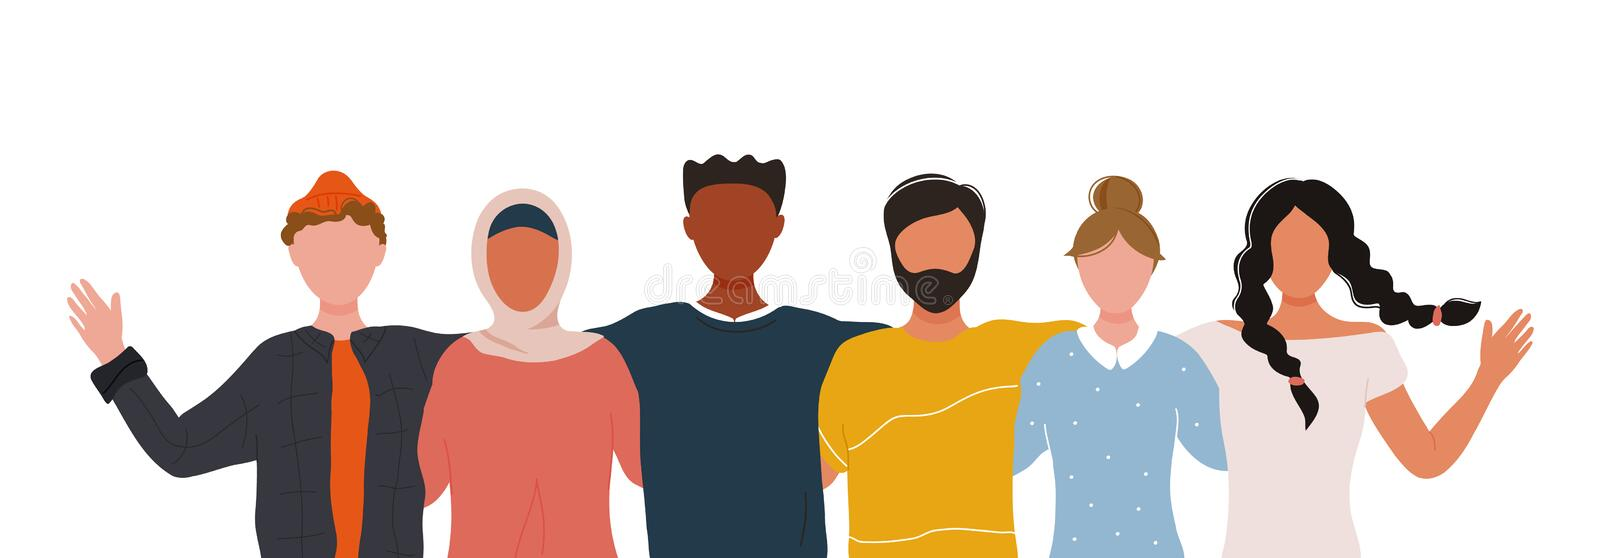 Multiracial group of people embracing each other royalty free illustration